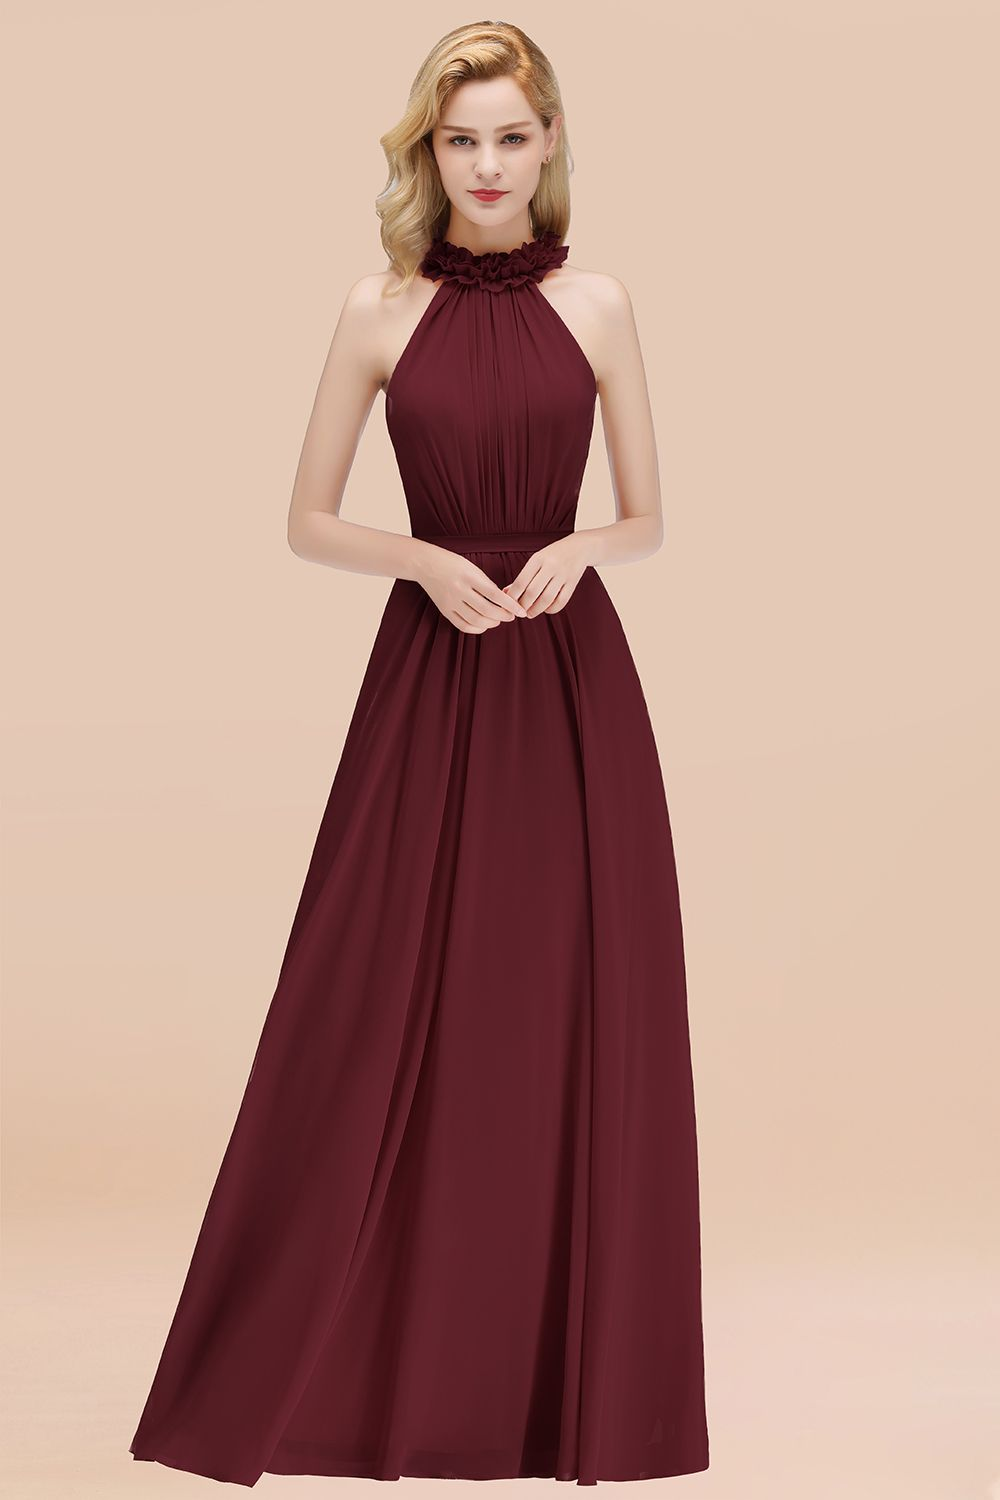 BMbridal Modest High-Neck Halter Ruffle Chiffon Bridesmaid Dresses Affordable